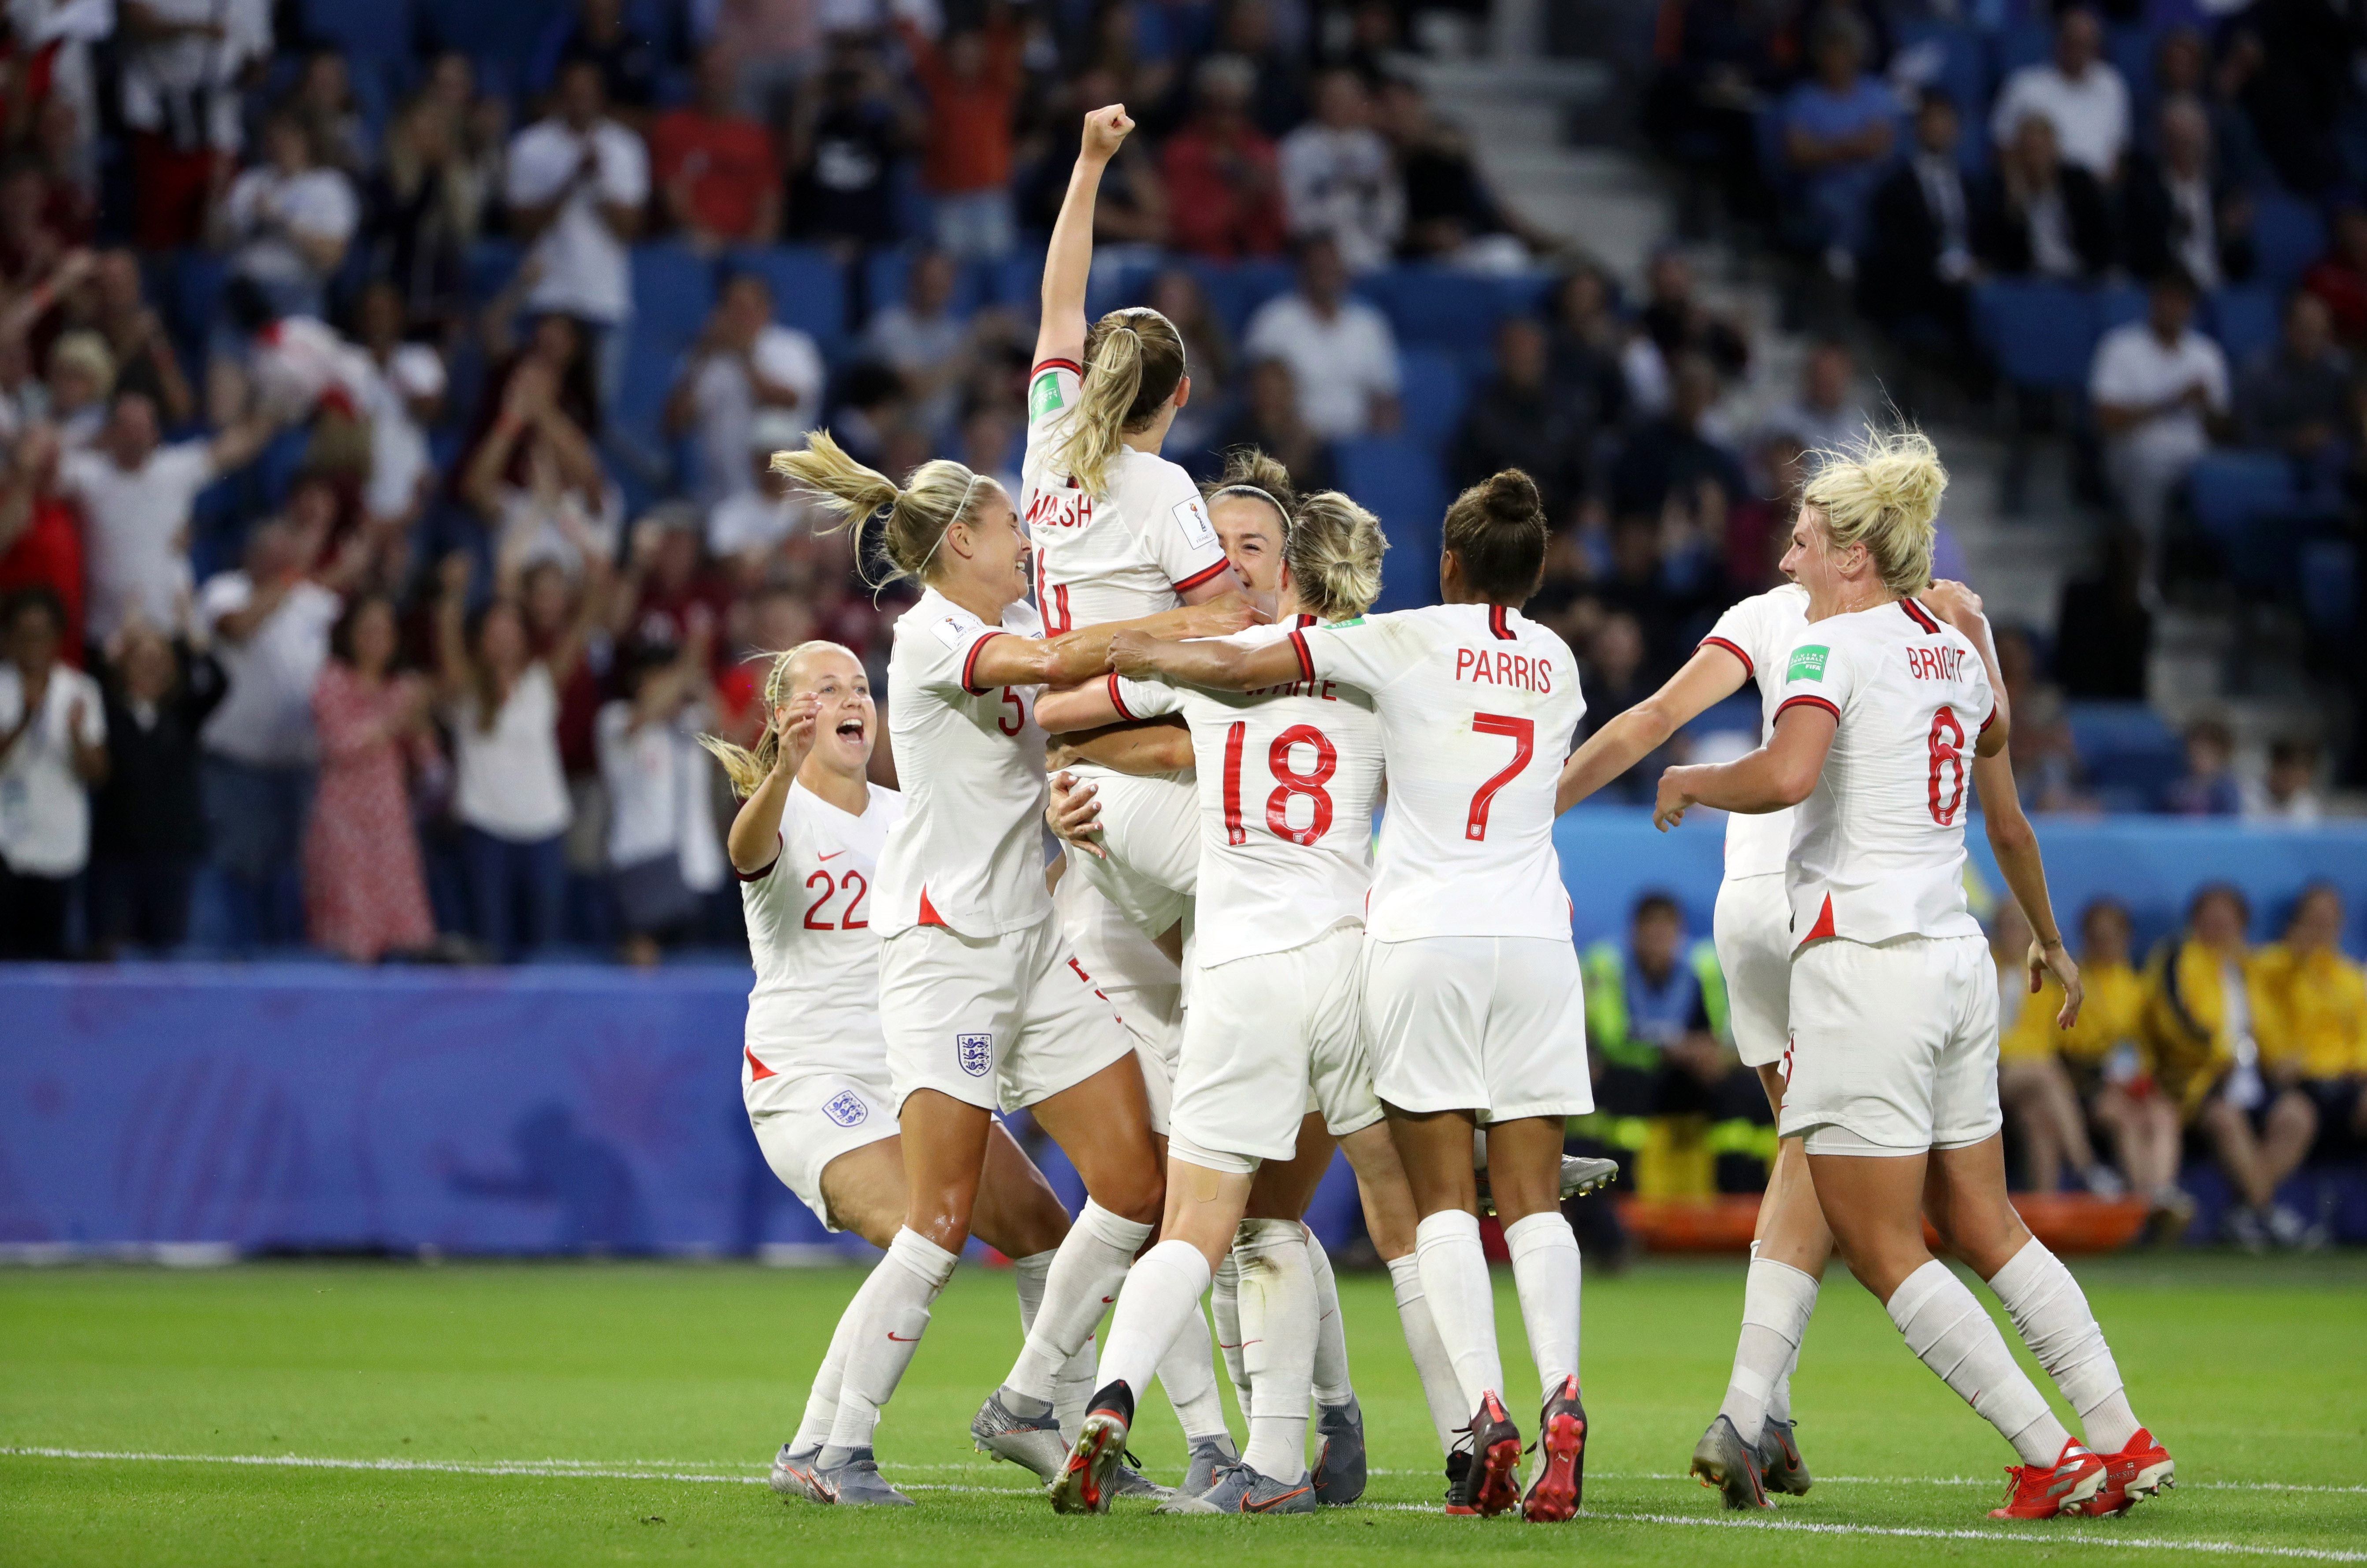 England have reached the semi-finals having conceded just once – in the group stage – and now face a USA team that has scored 22 goals so far